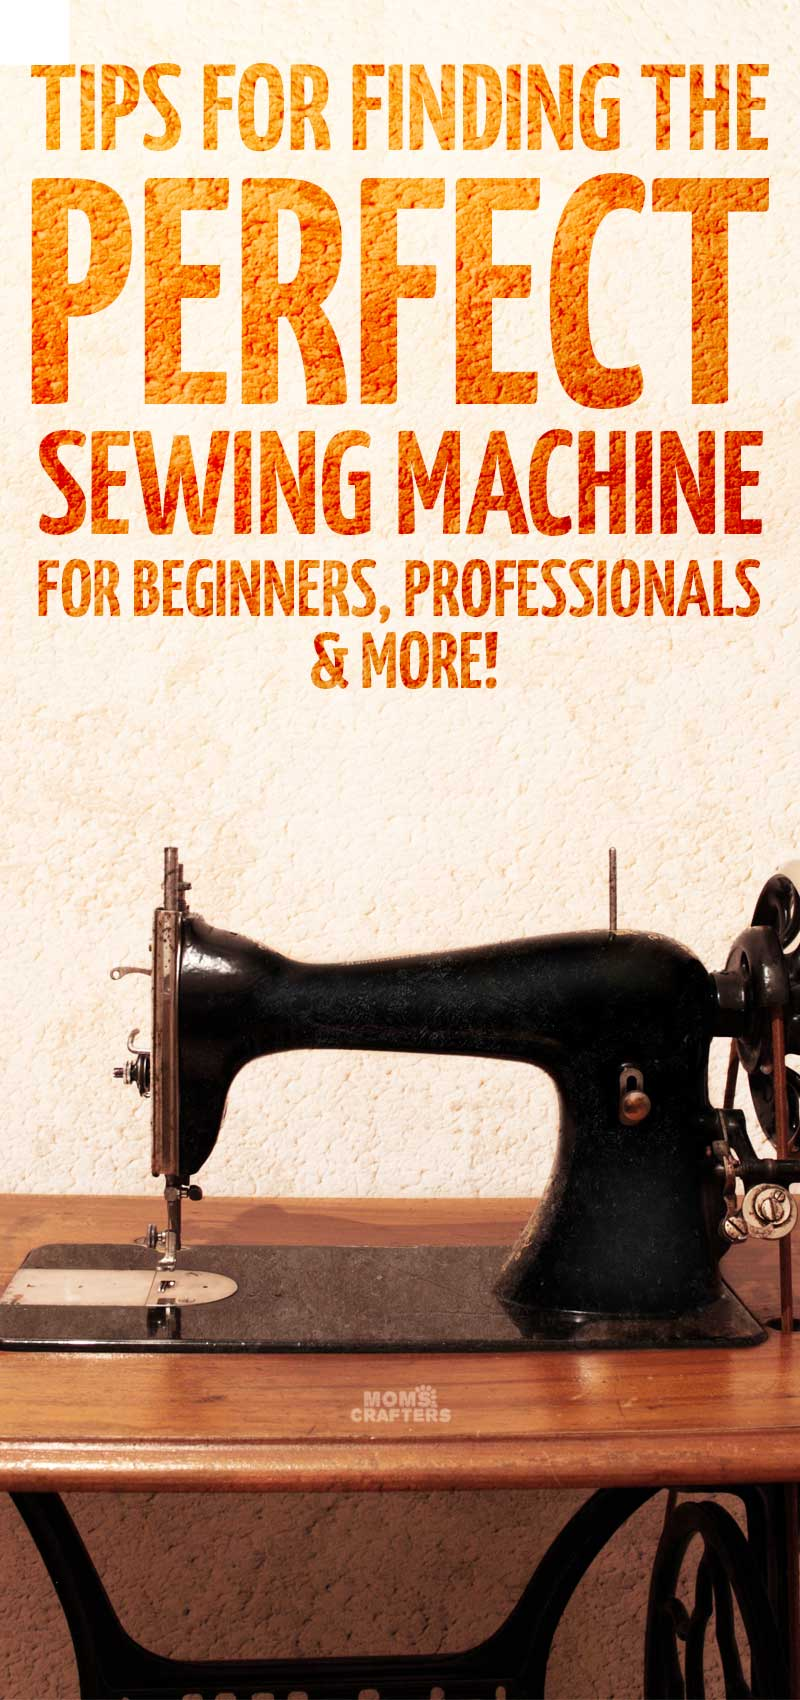 Find the best sewing machine for your needs with reviews and shopping guides.